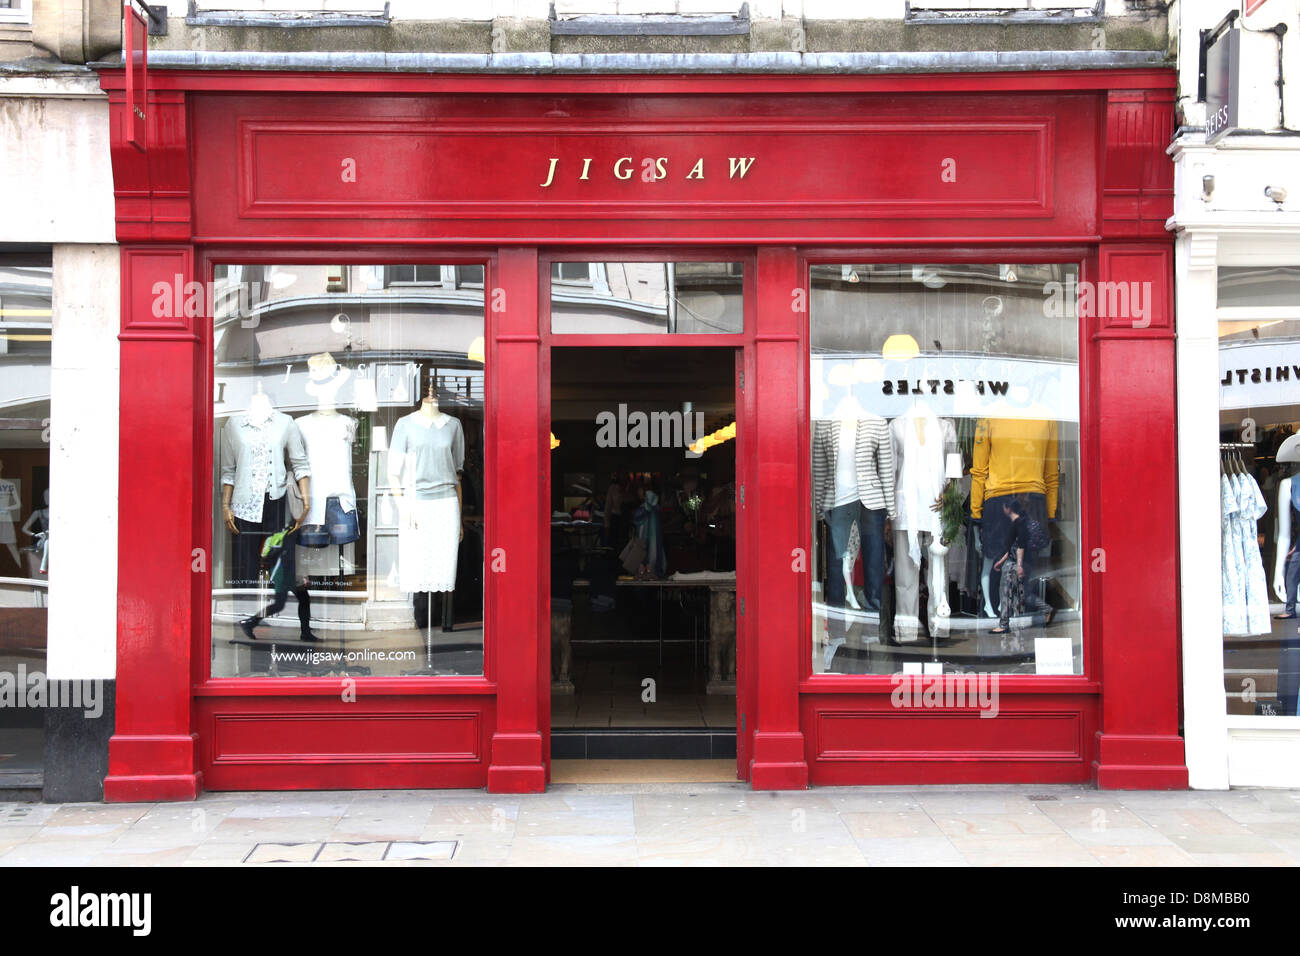 Jigsaw, High street fashion store. - Stock Image